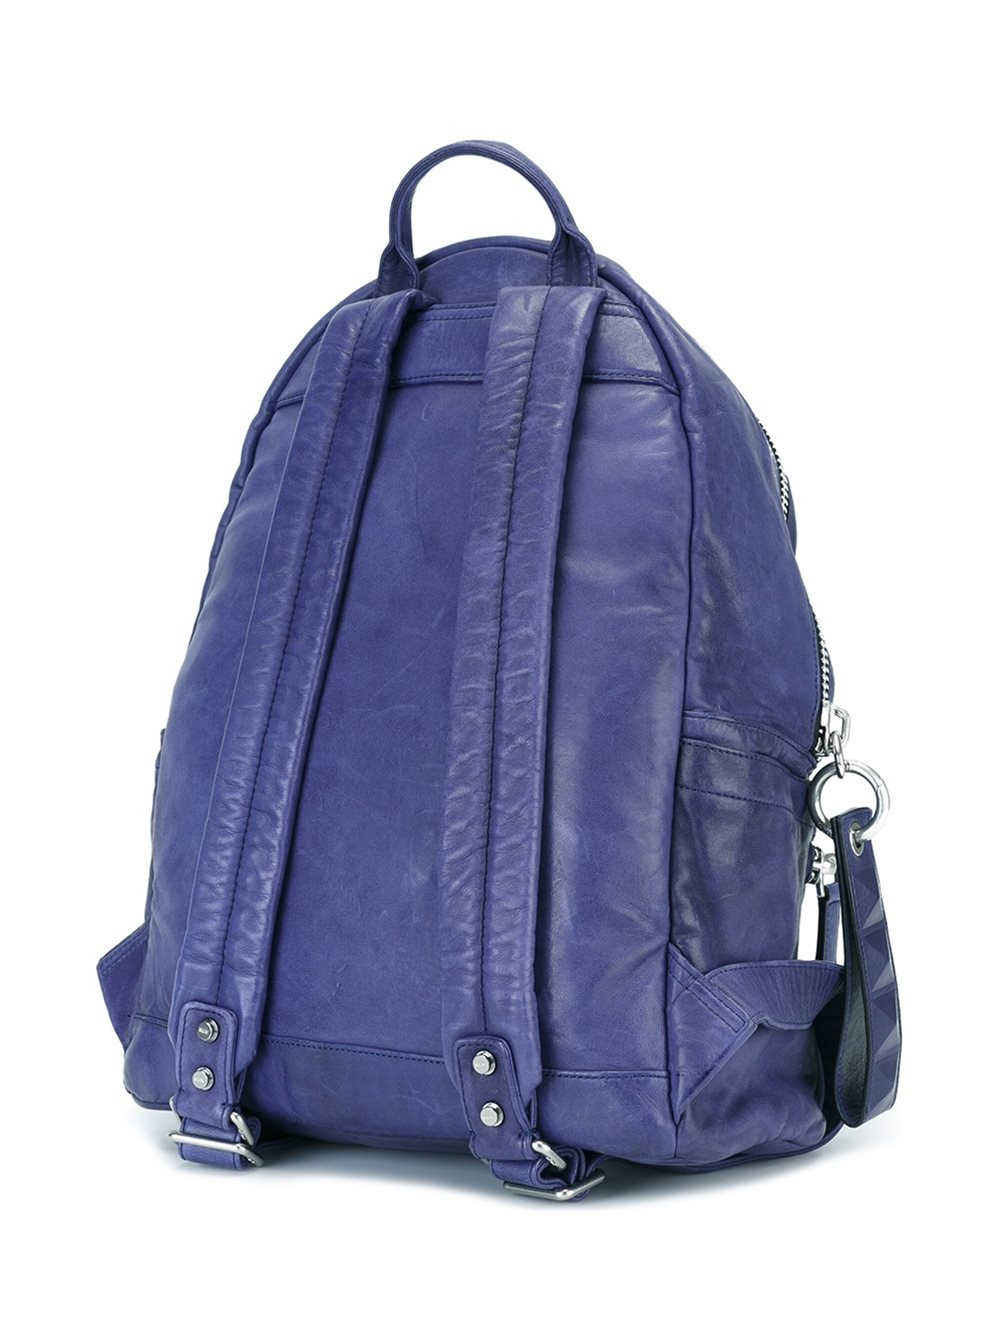 Mcm Leather Backpack In Blue For Men Lyst